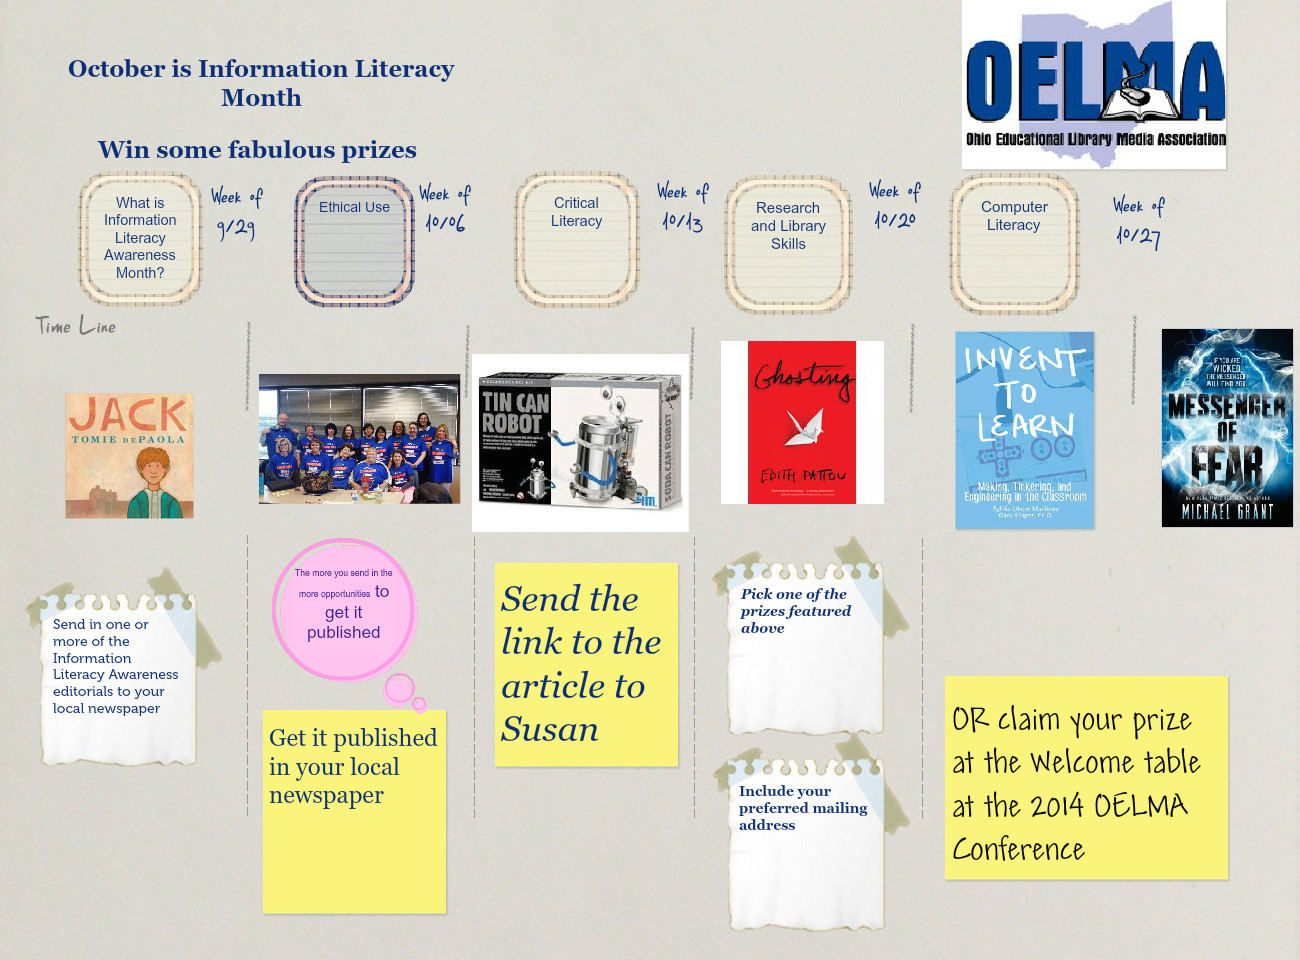 October is Information Literacy Month